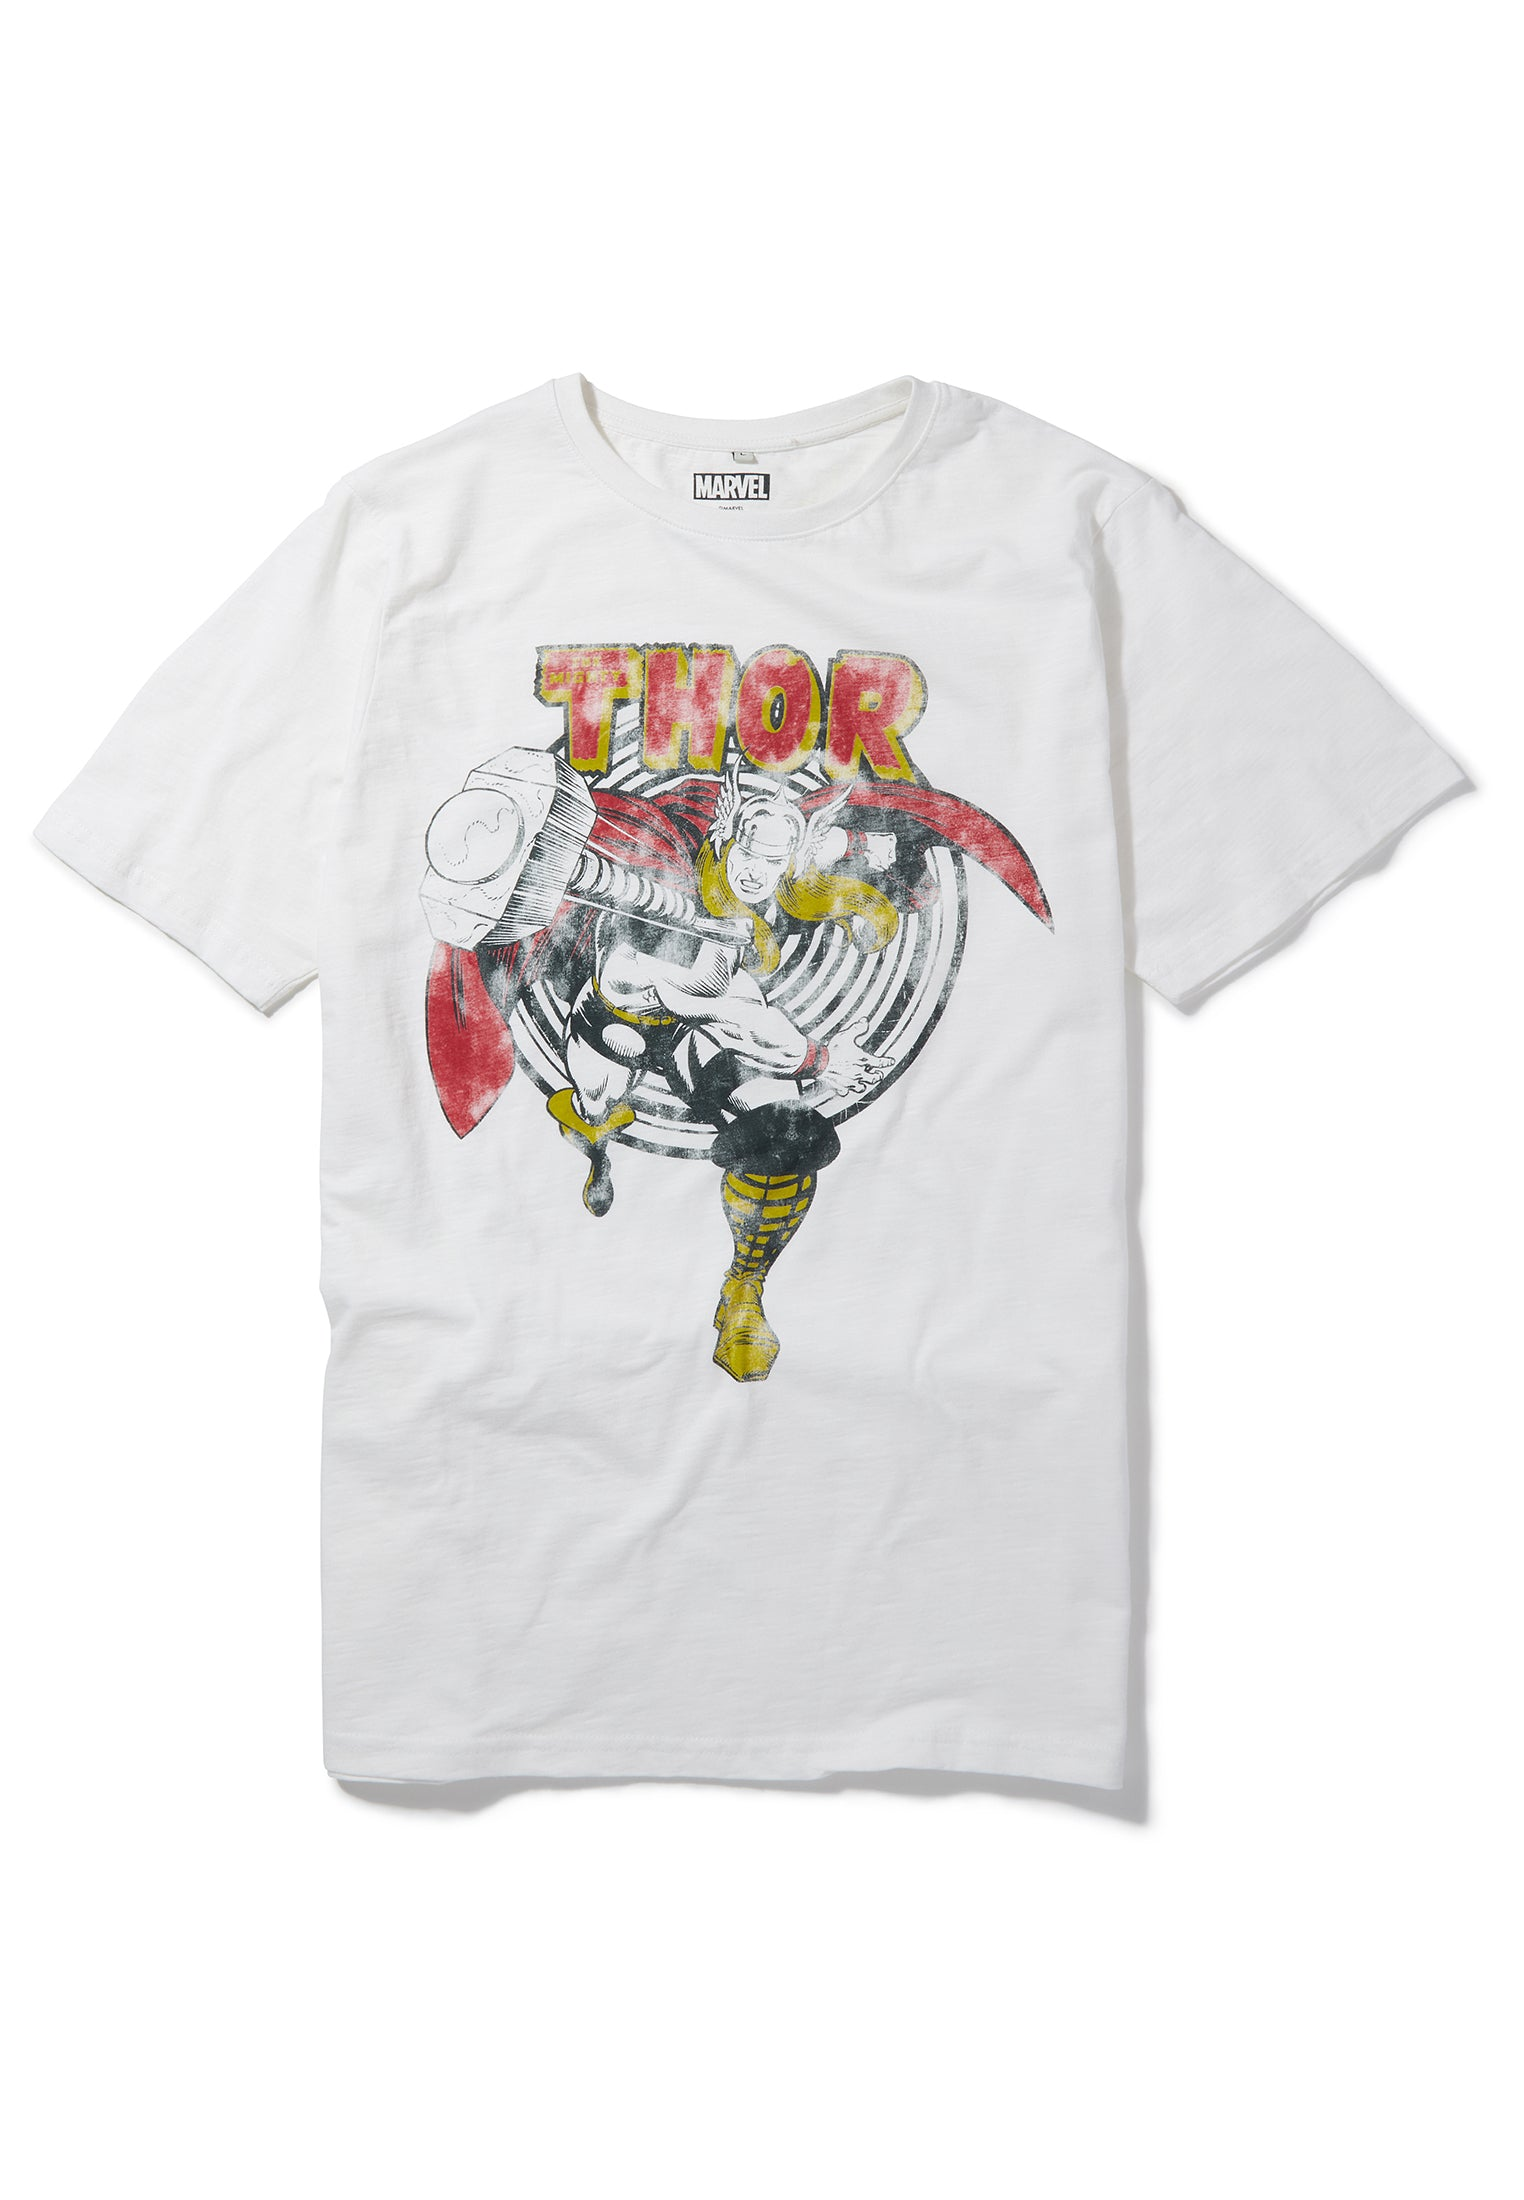 OFFICIAL MARVEL RETRO THE MIGHTY THOR HAMMER SYMBOL BLACK T-SHIRT BRAND NEW